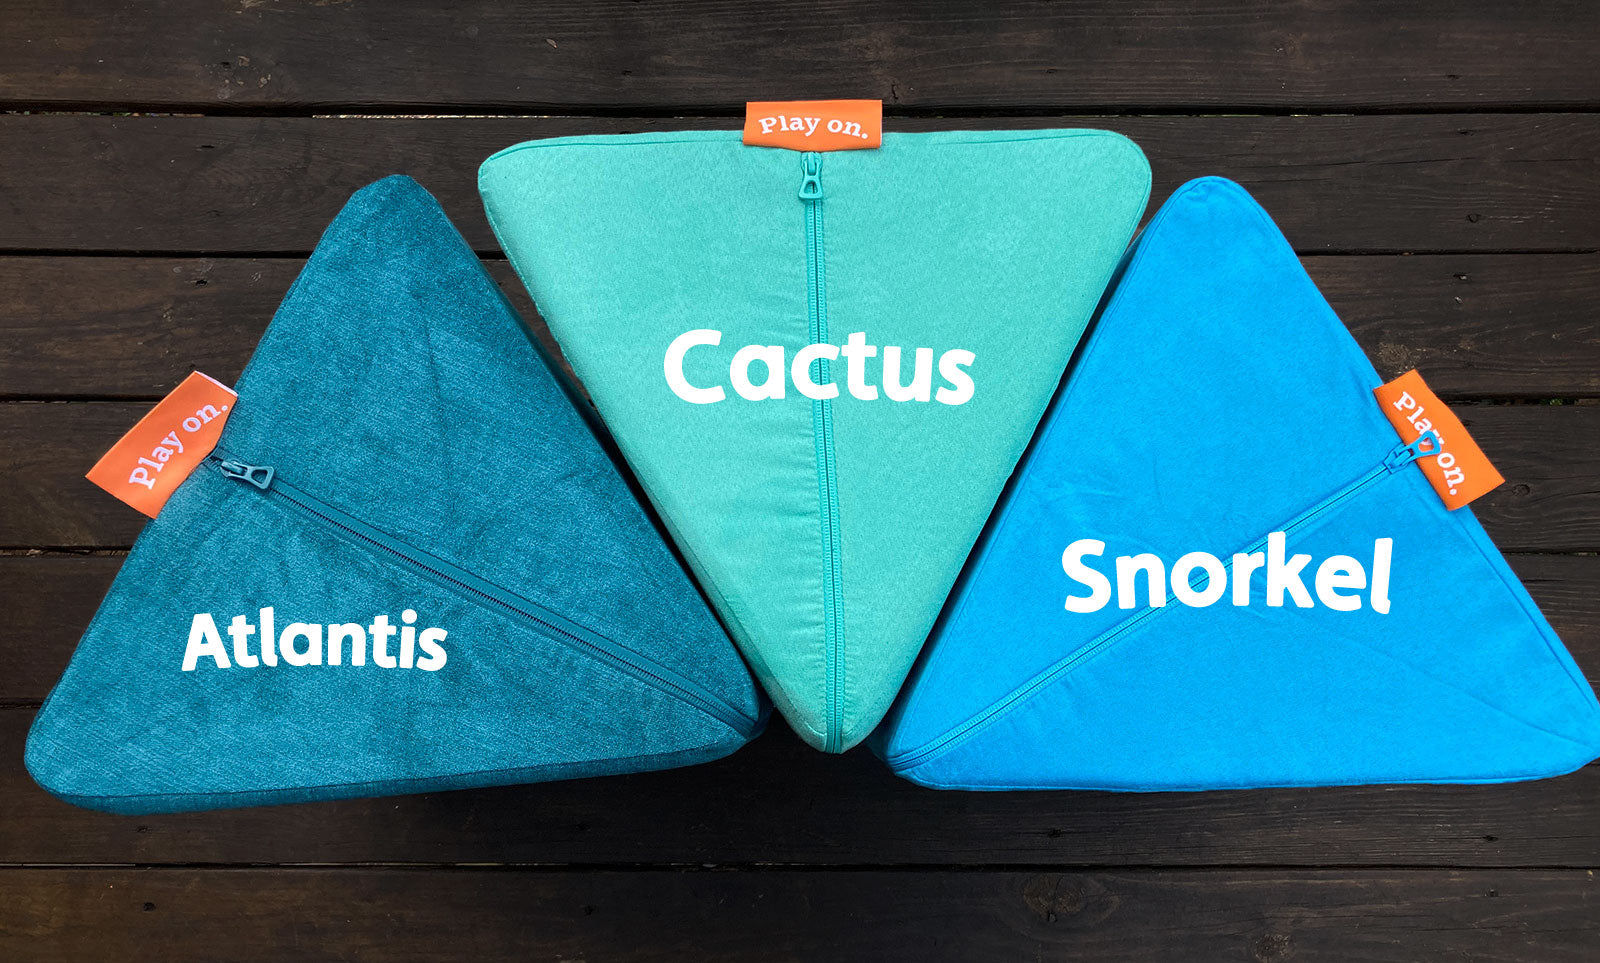 Comparison of Nugget colors: Atlantis — textured teal blue; Cactus —deep, saturated mint; Snorkel — a bright, popping aquamarine